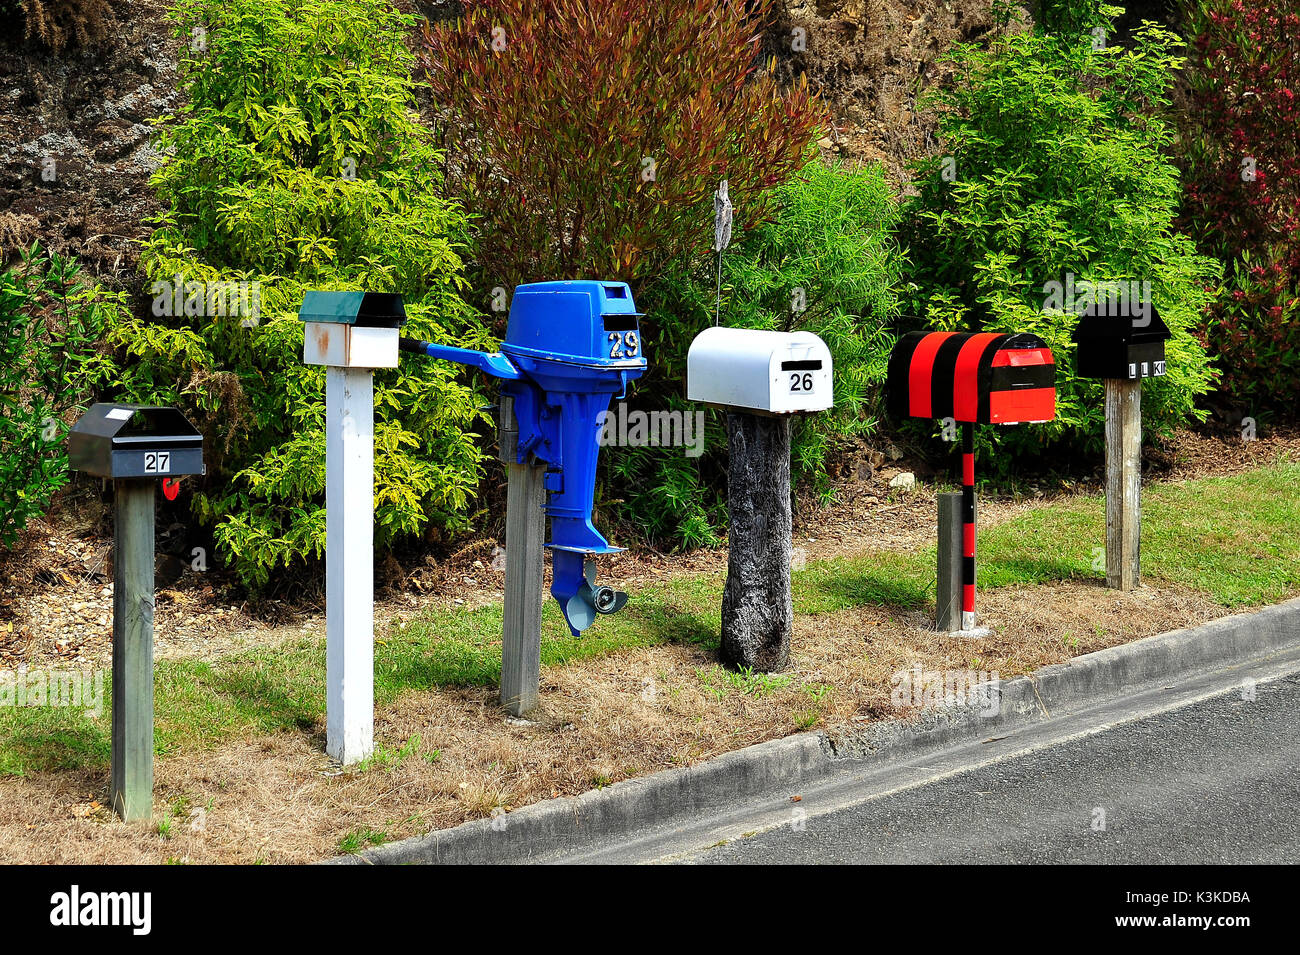 Coloured selfbuilt mailboxes, an old boot engine. - Stock Image